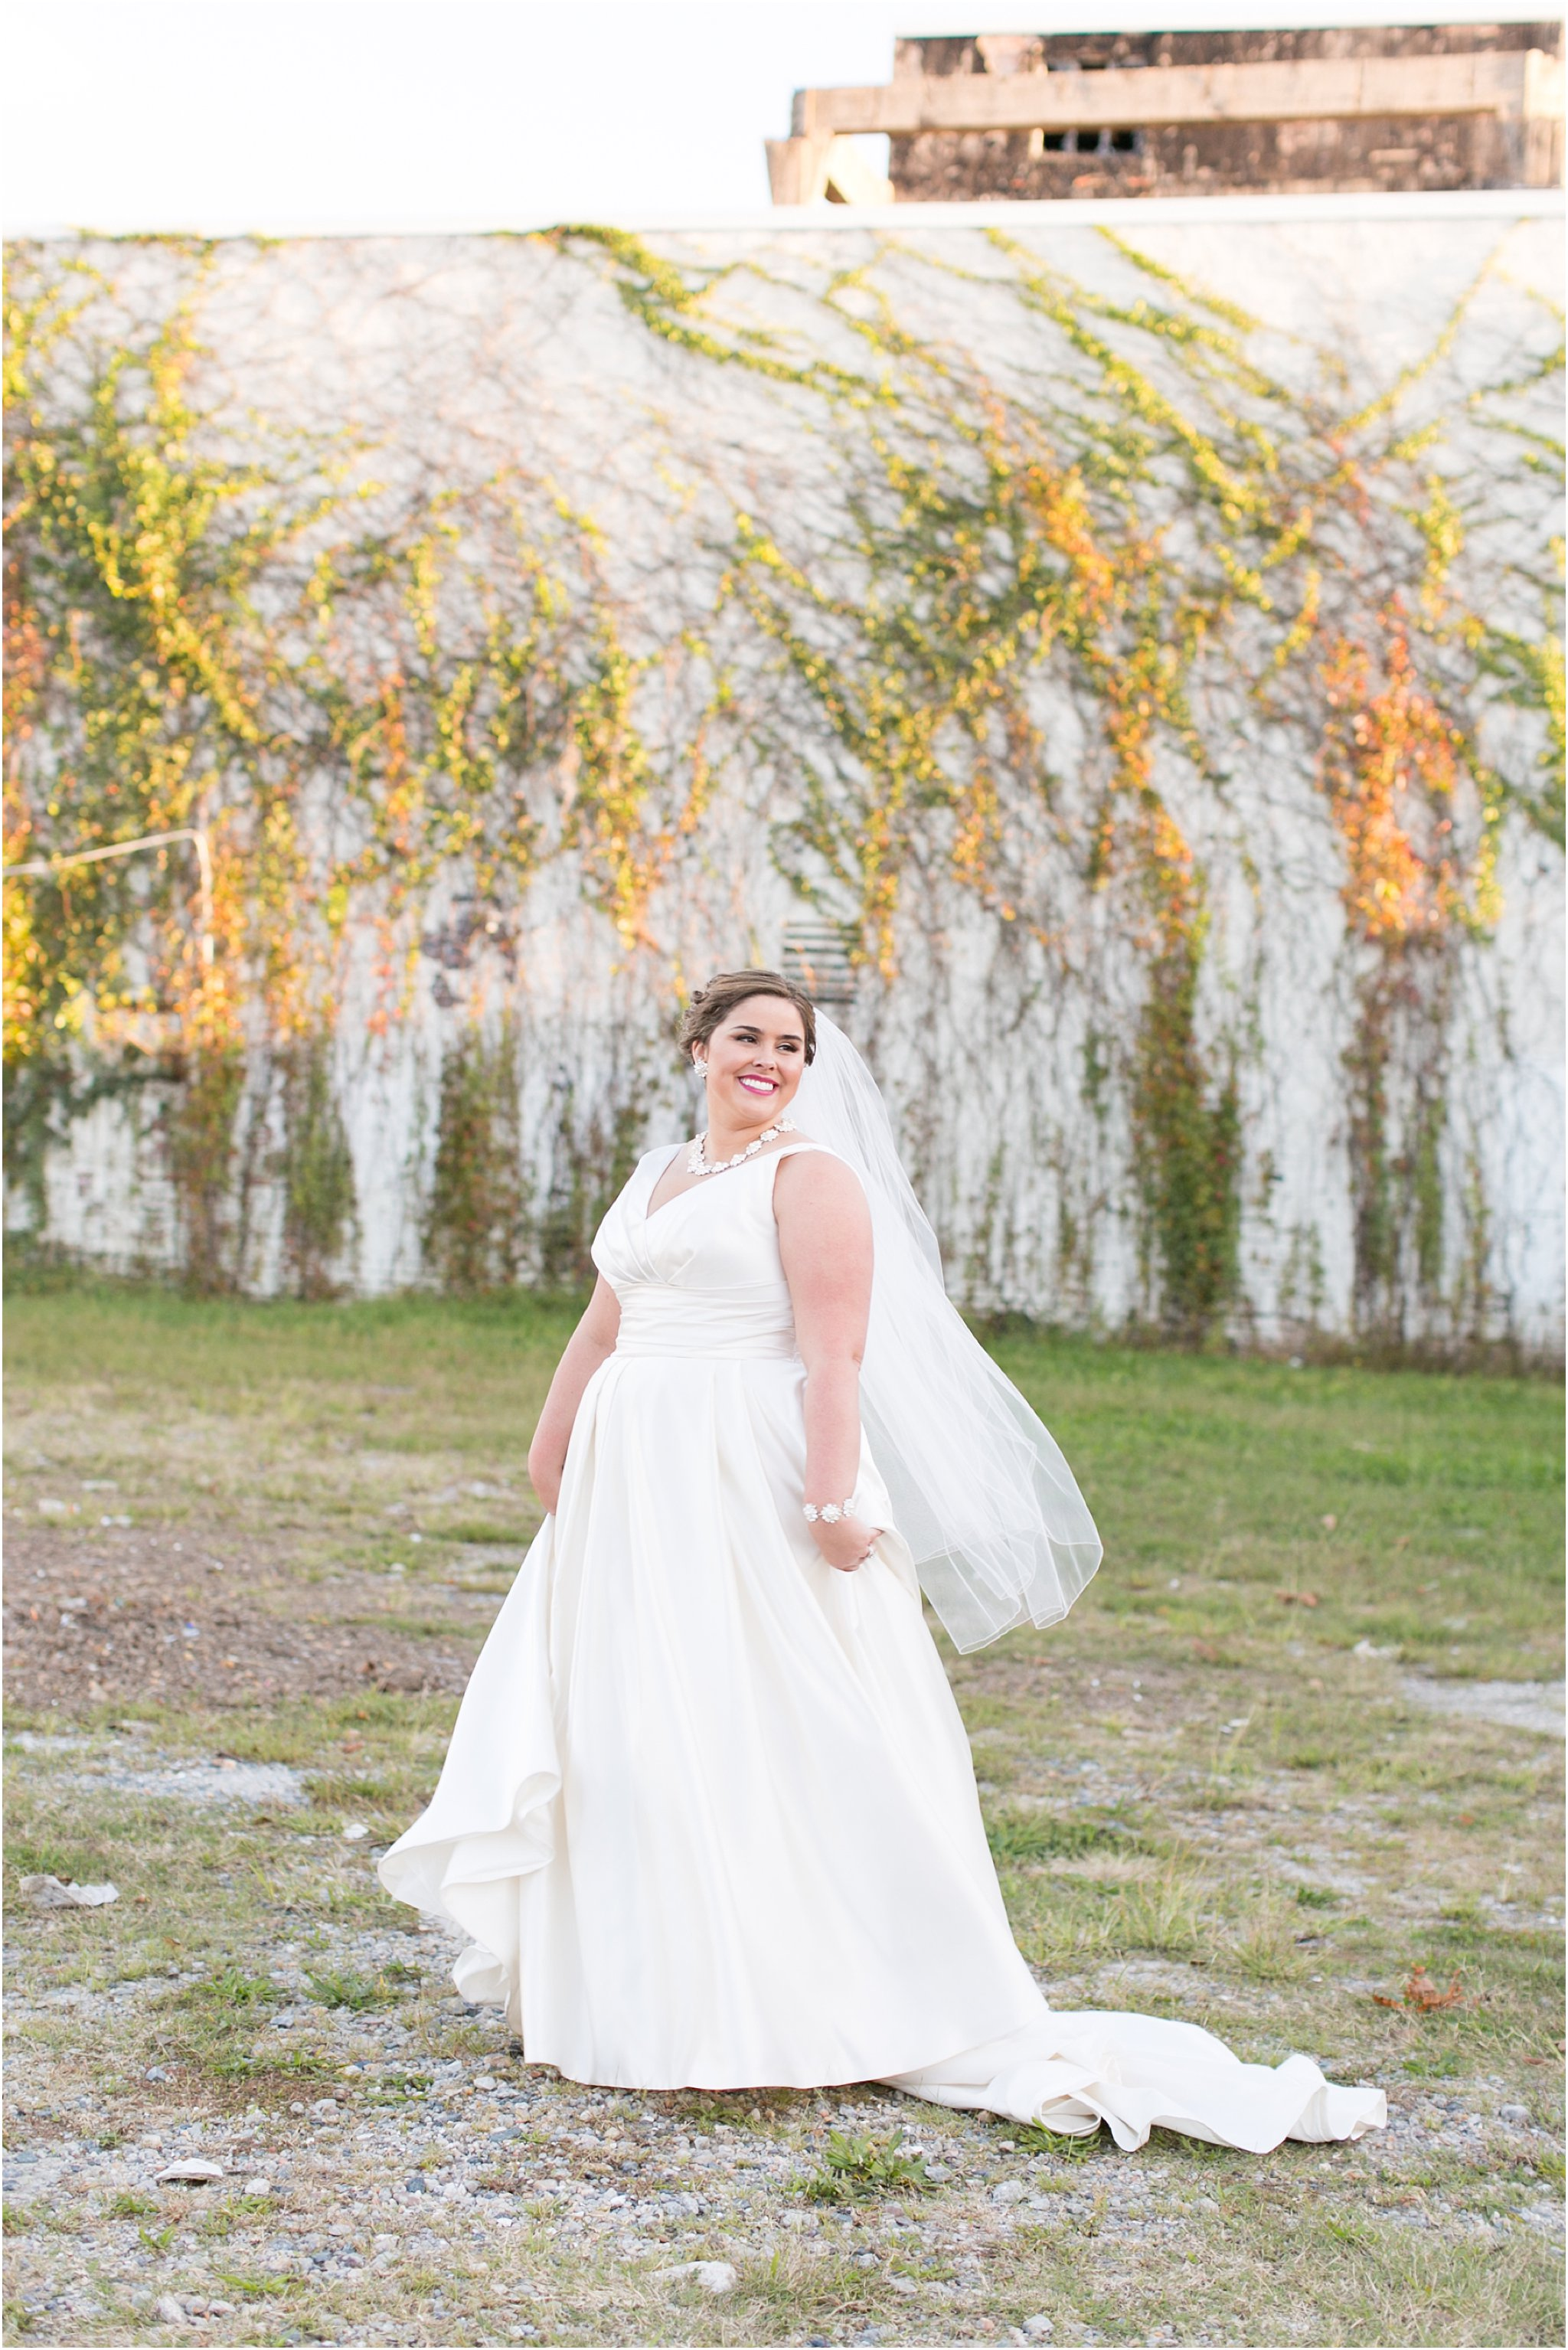 va_jessica_ryan_photography_virginia_wedding_norfolk_harrison_opera_house_norfolk_arts_district_portraits_3823